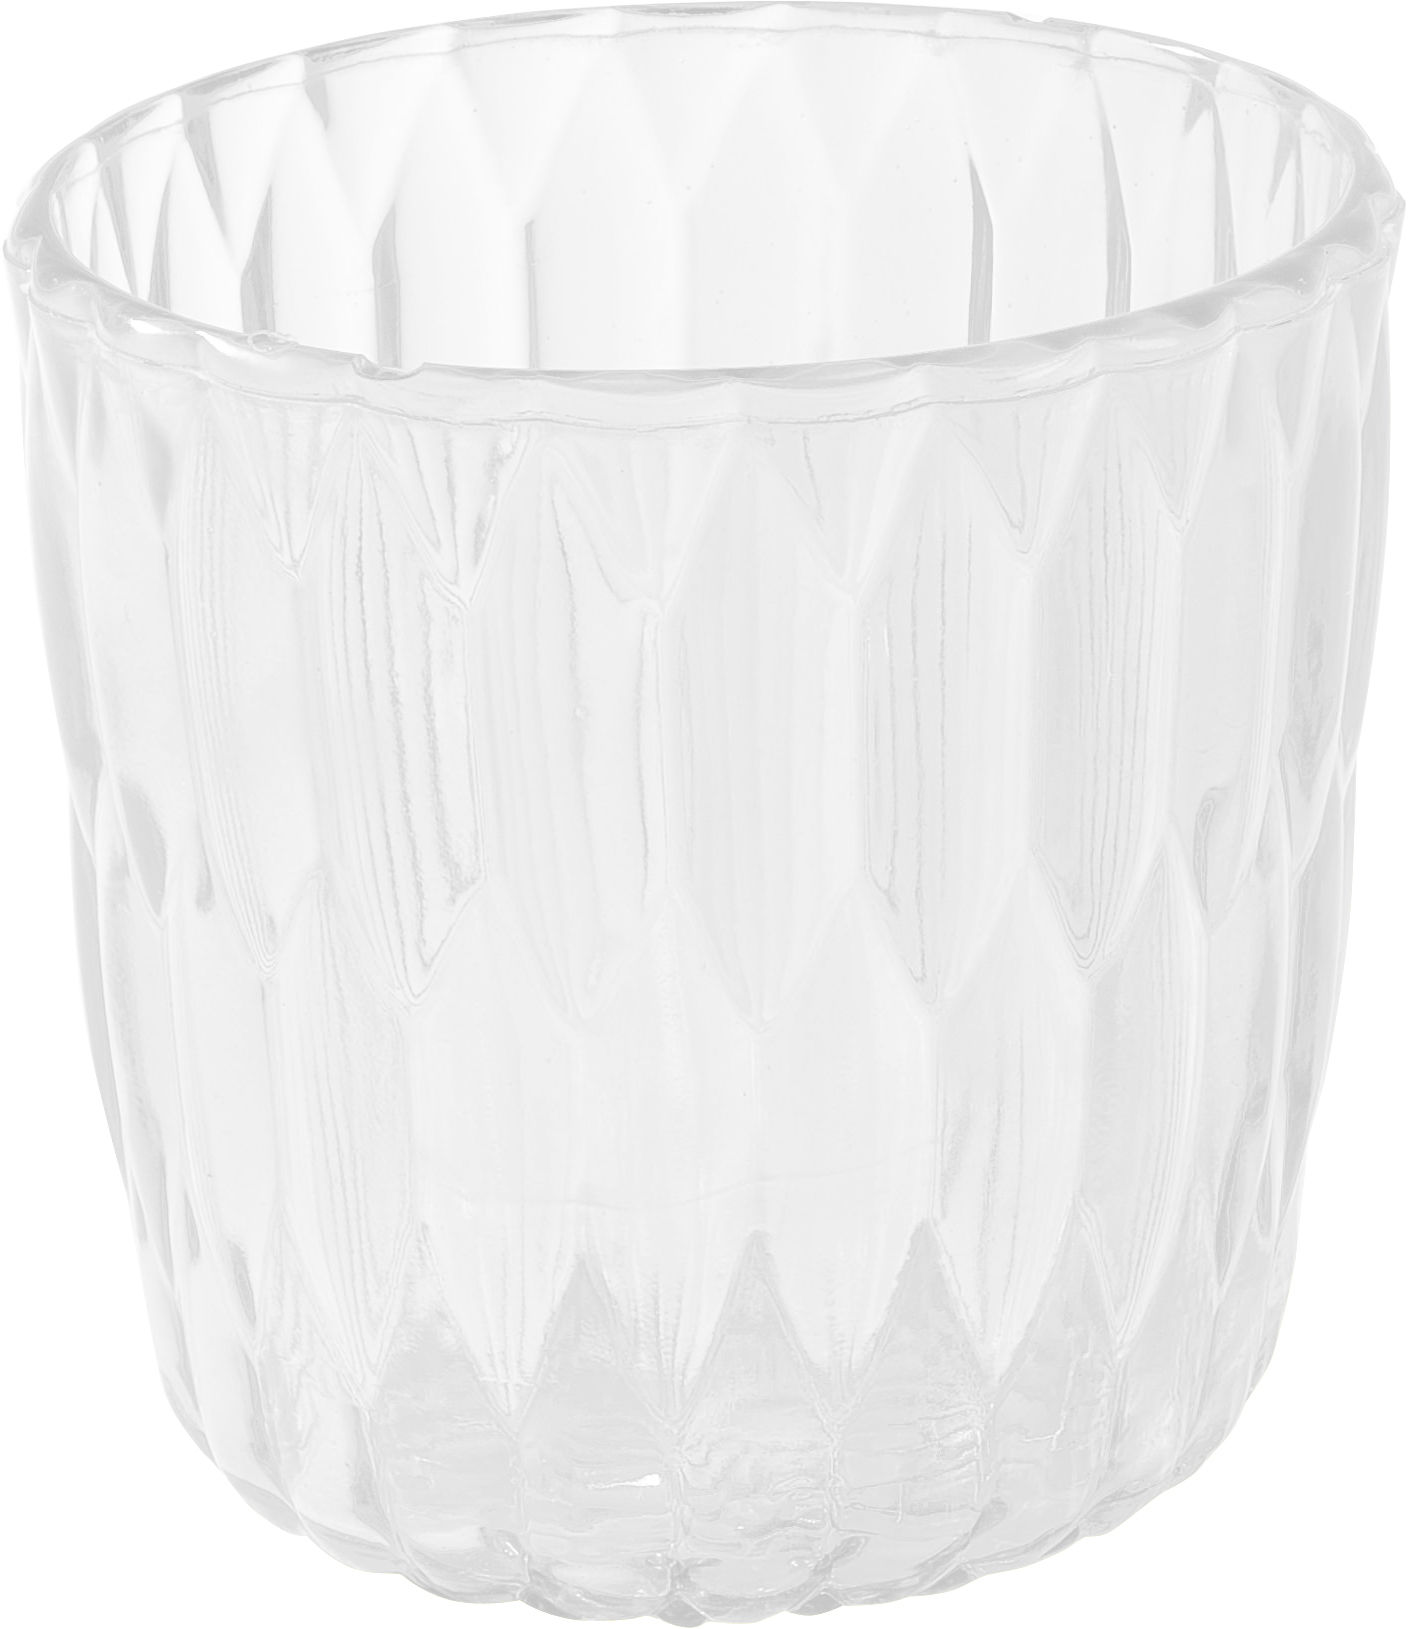 Decoration - Vases - Jelly Vase - Ice bucket by Kartell - Crystal - PMMA